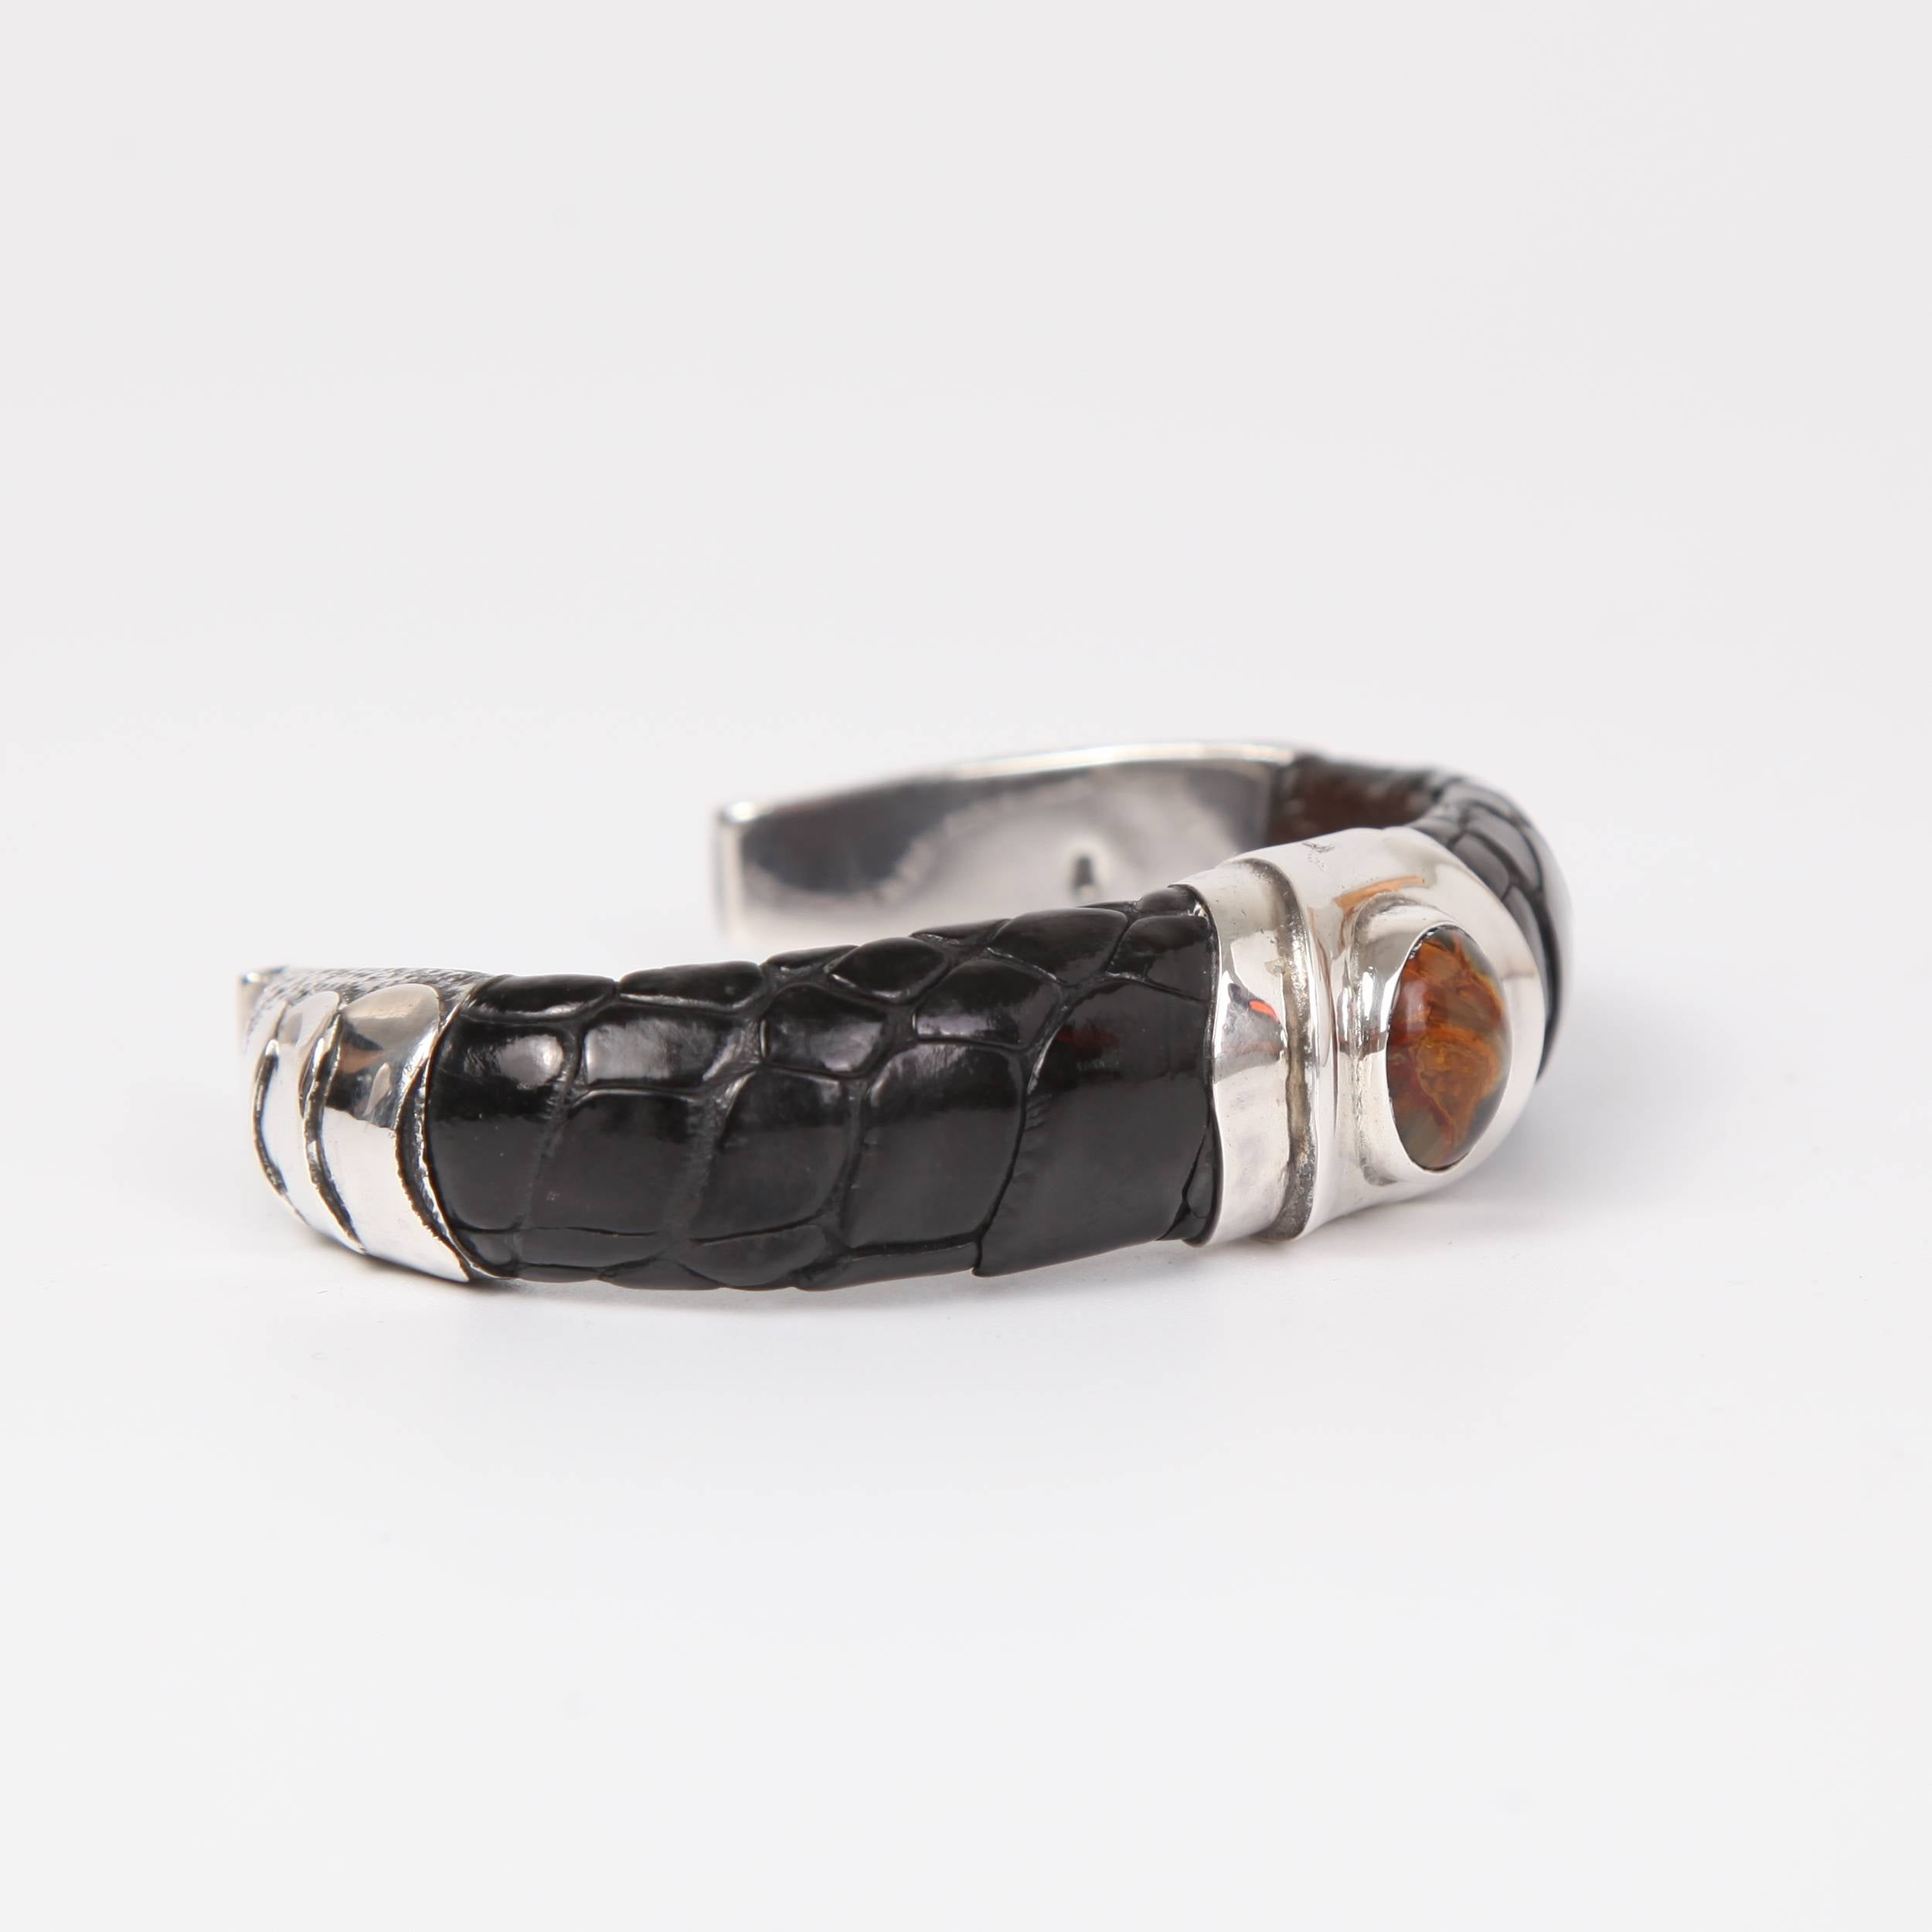 Leather (Ostrich toe skin) Bracelet with Sterling Silver and Pietersite